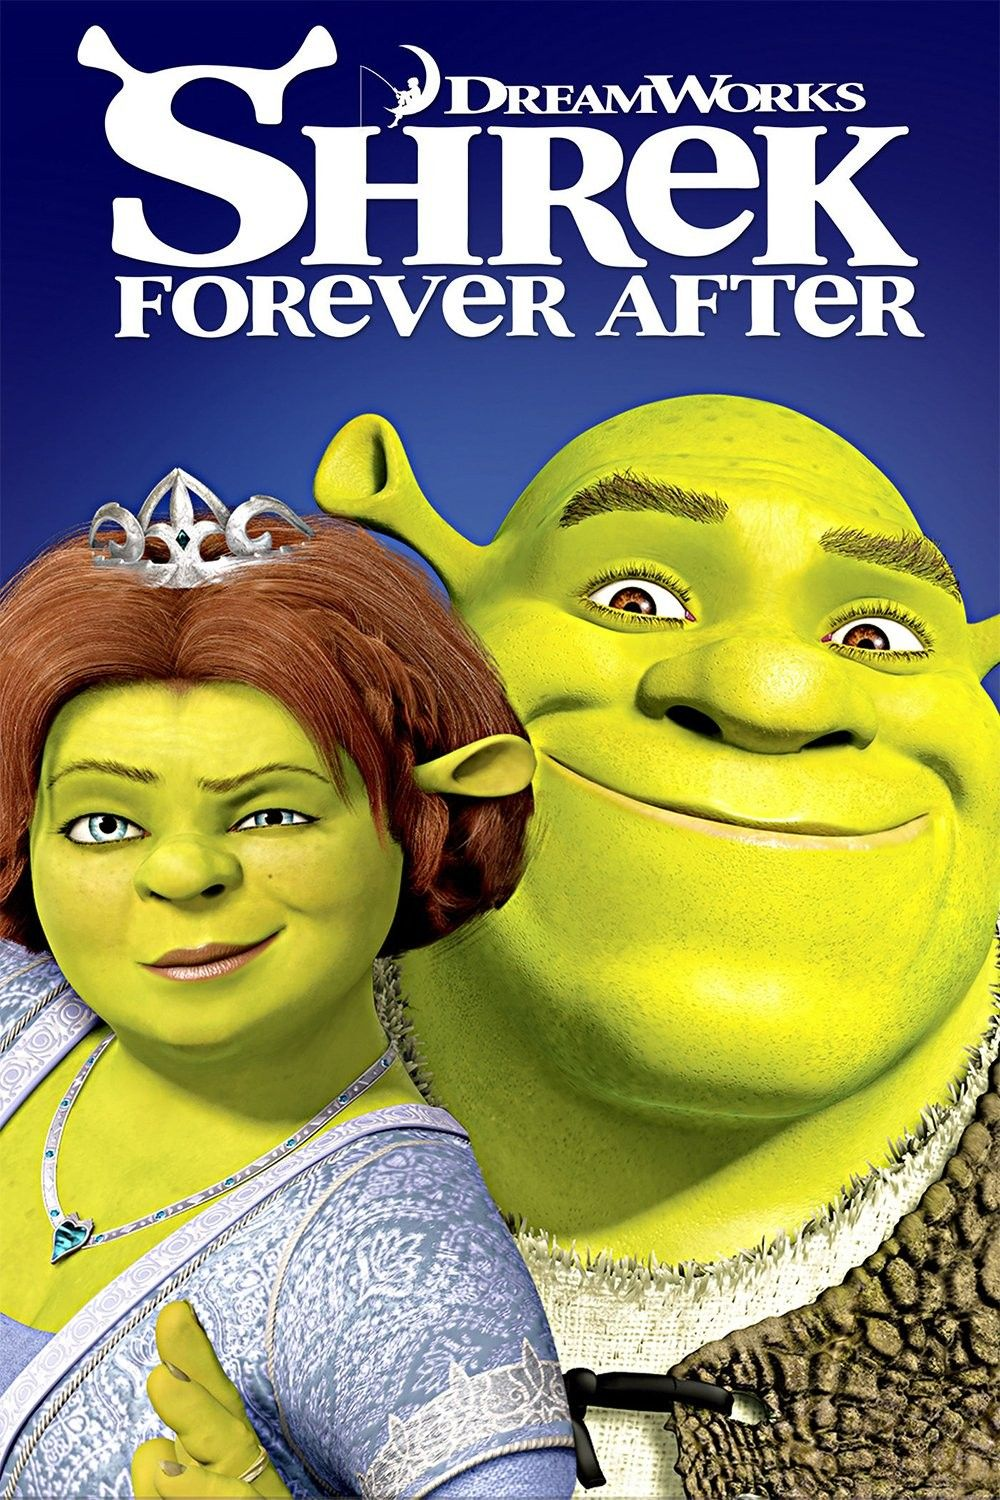 Watch Shrek Forever After Free Online 2010 Hd Full Movie Shrek Free Movies Online Full Movies Online Free